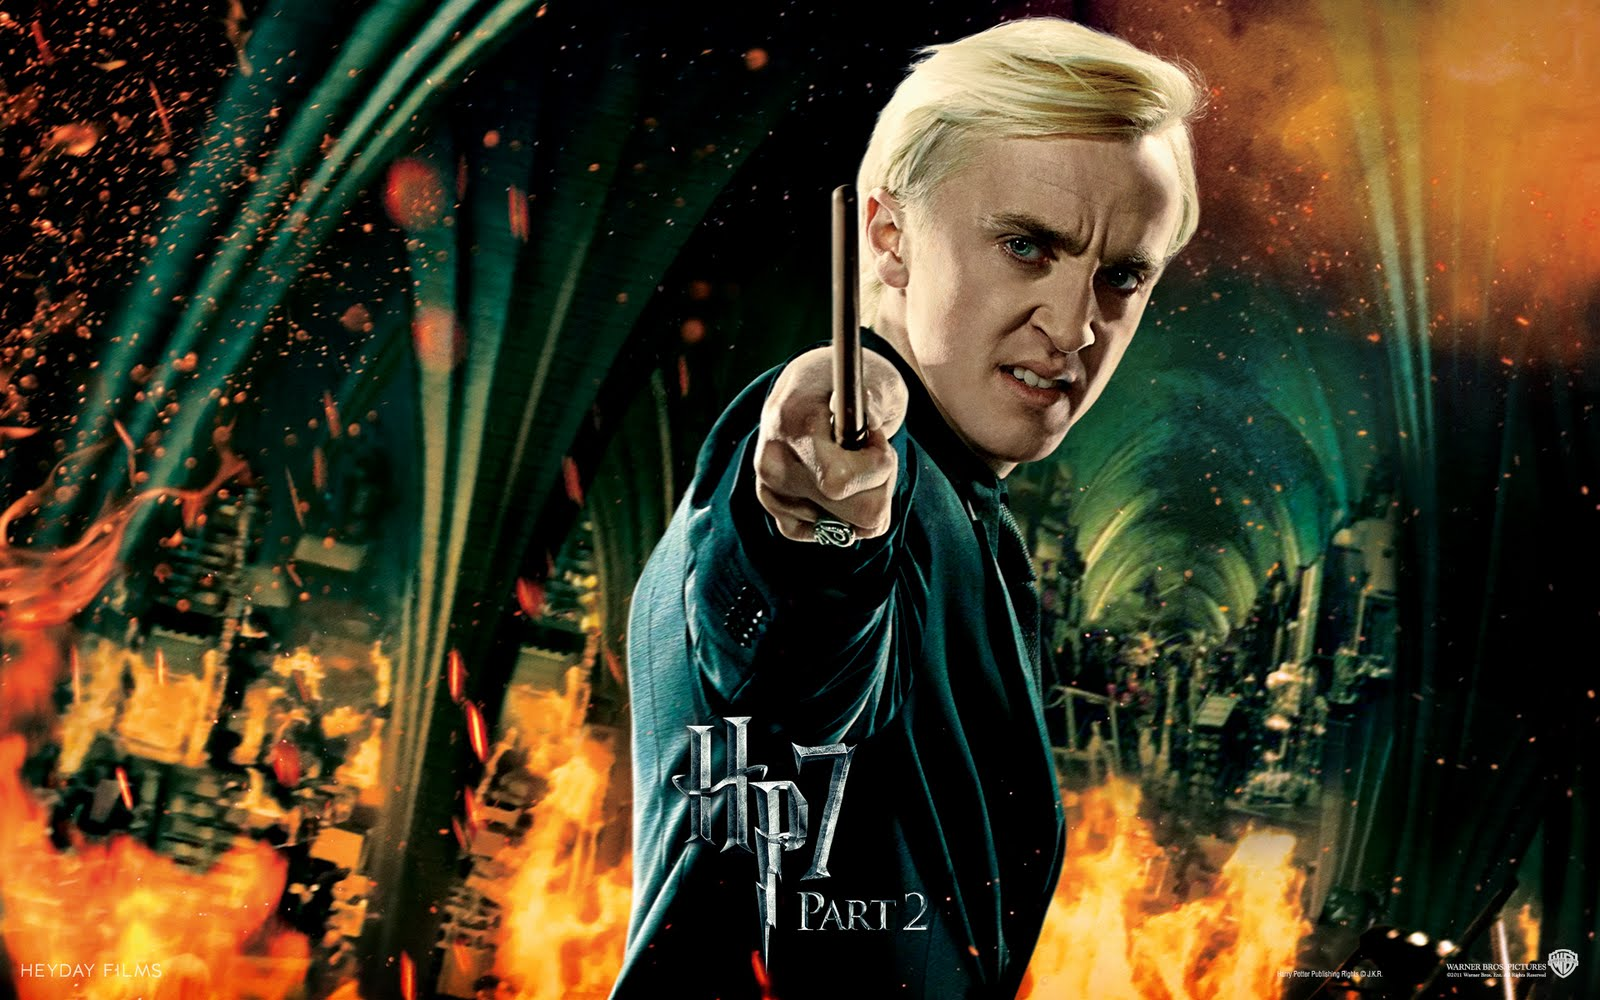 Harry potter and the deathly hallows part 2 wallpapers 2 jpg